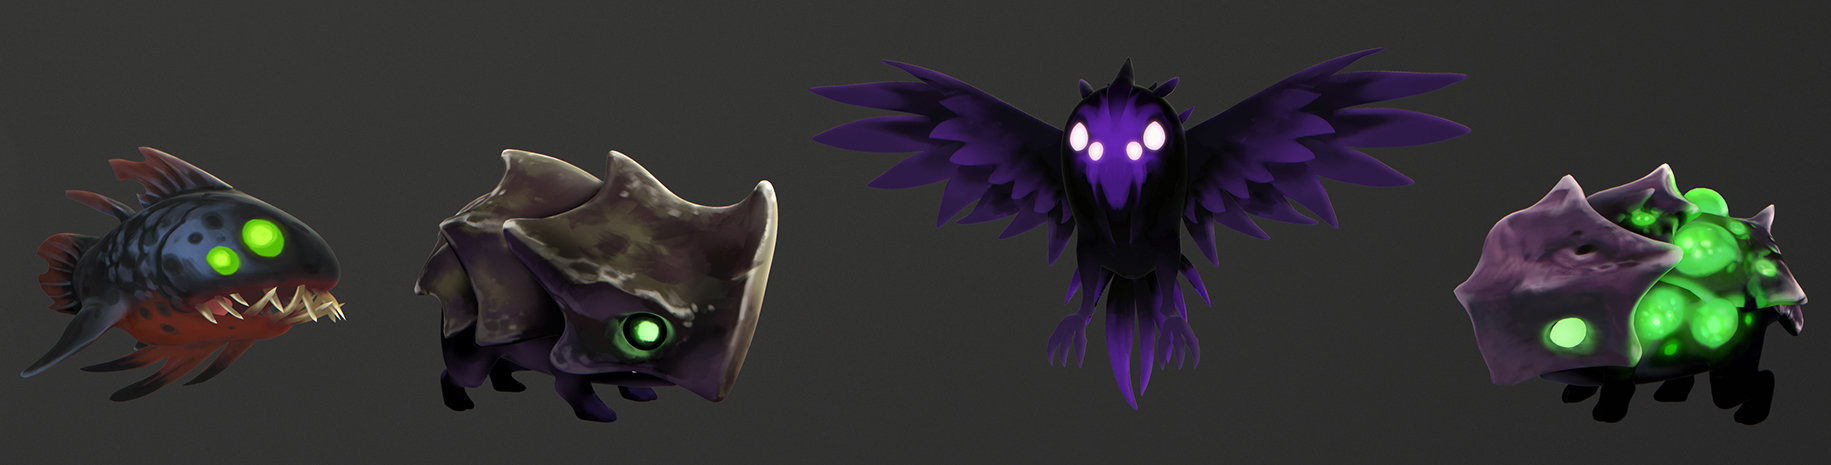 © Johannes Figlhuber, Textures character design,  Ori and the Blind Forest , Moon Studios, Microsoft Studios.